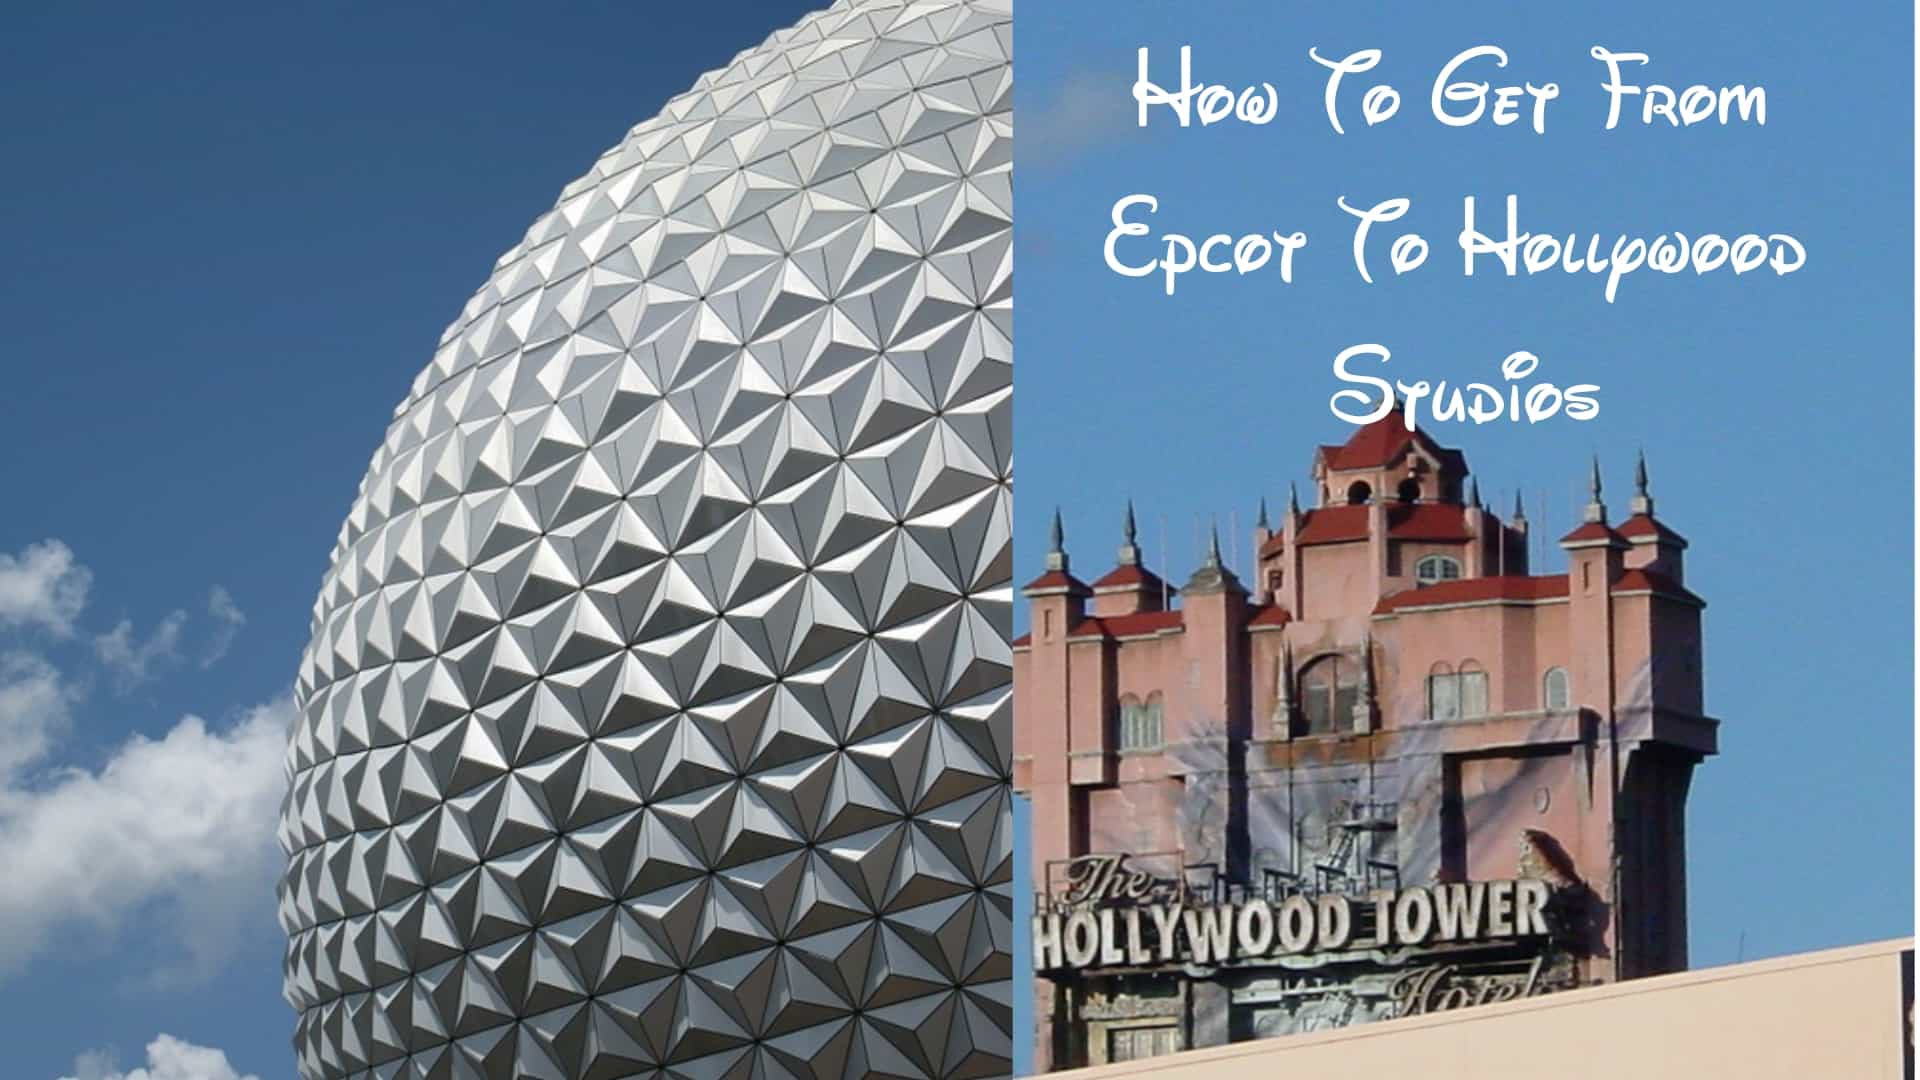 How To Get From Epcot To Hollywood Studios